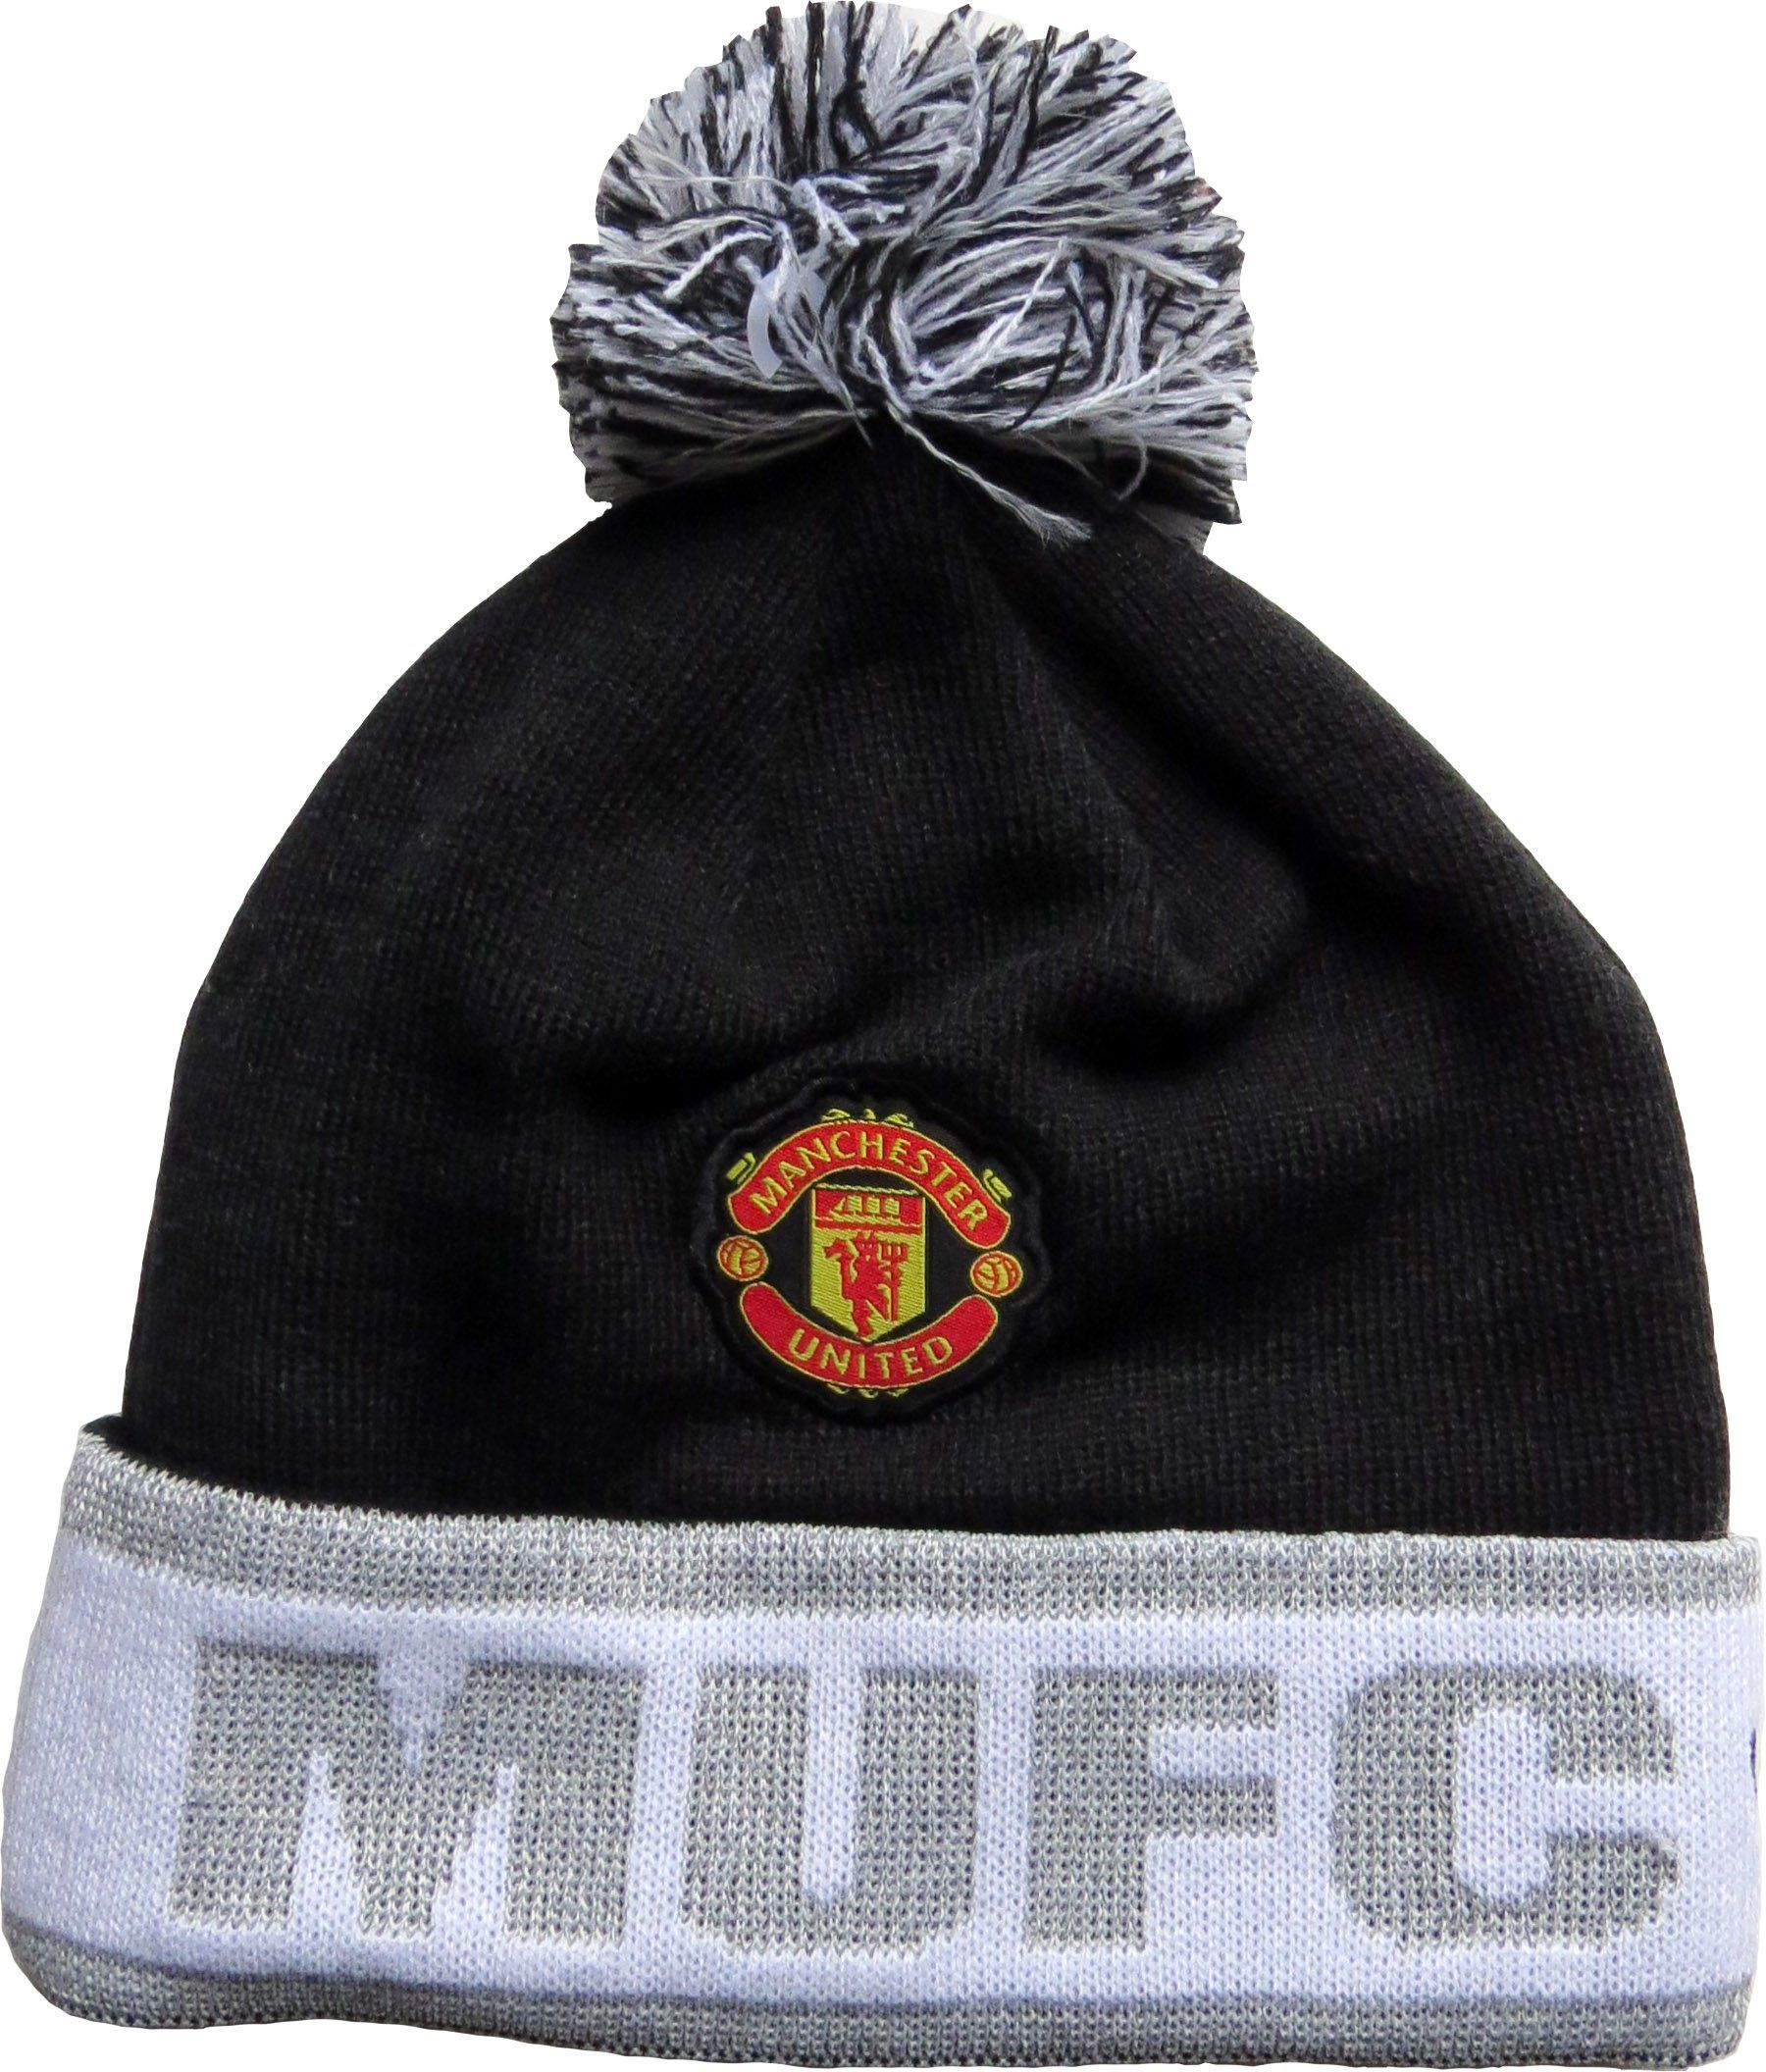 New Era Manchester United Bobble Hat Black With The Team